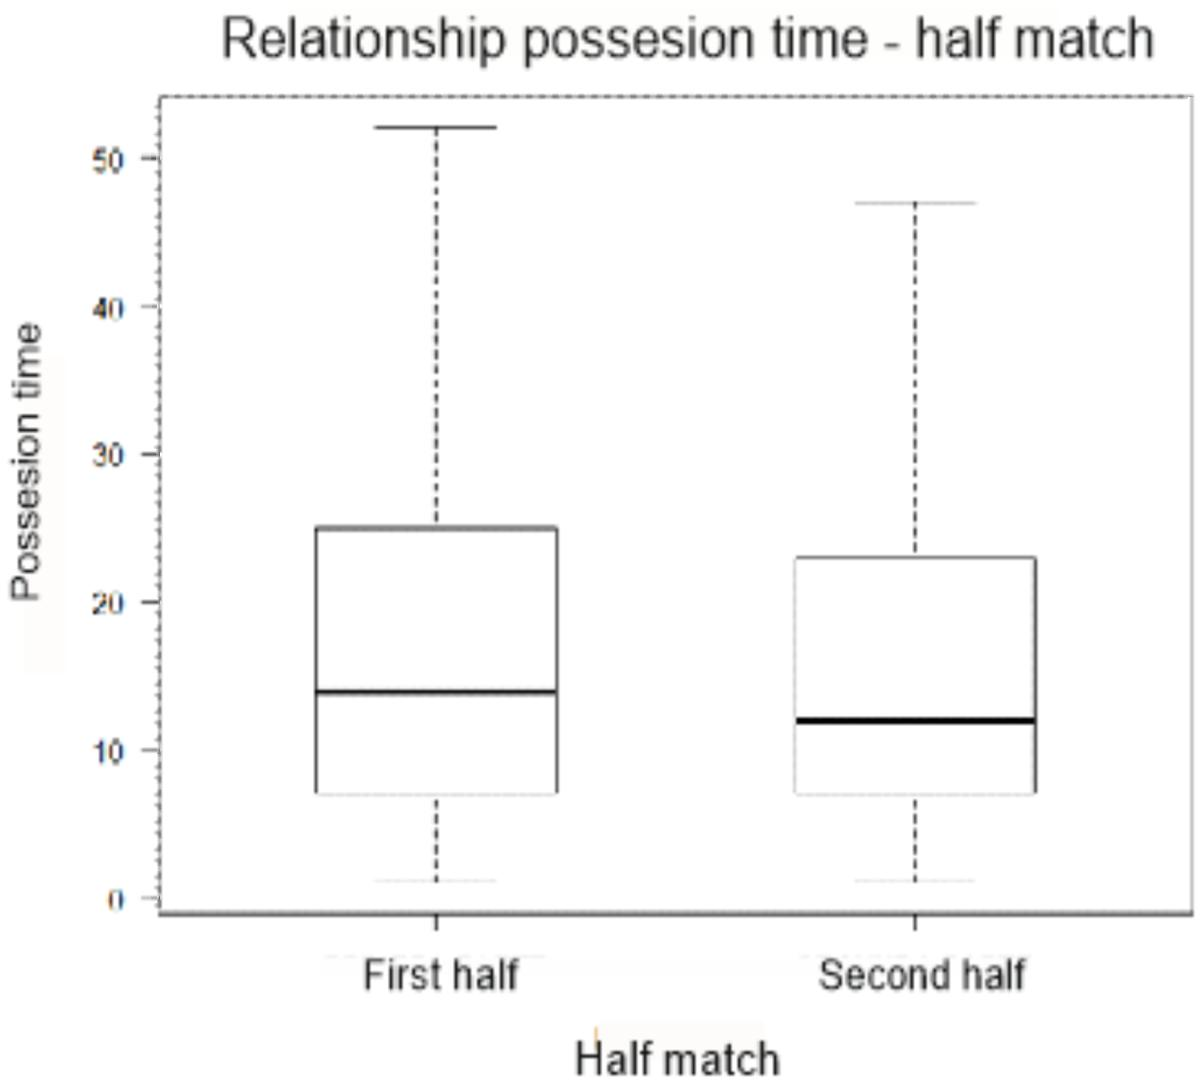 Frontiers | Possession Zone as a Performance Indicator in Football